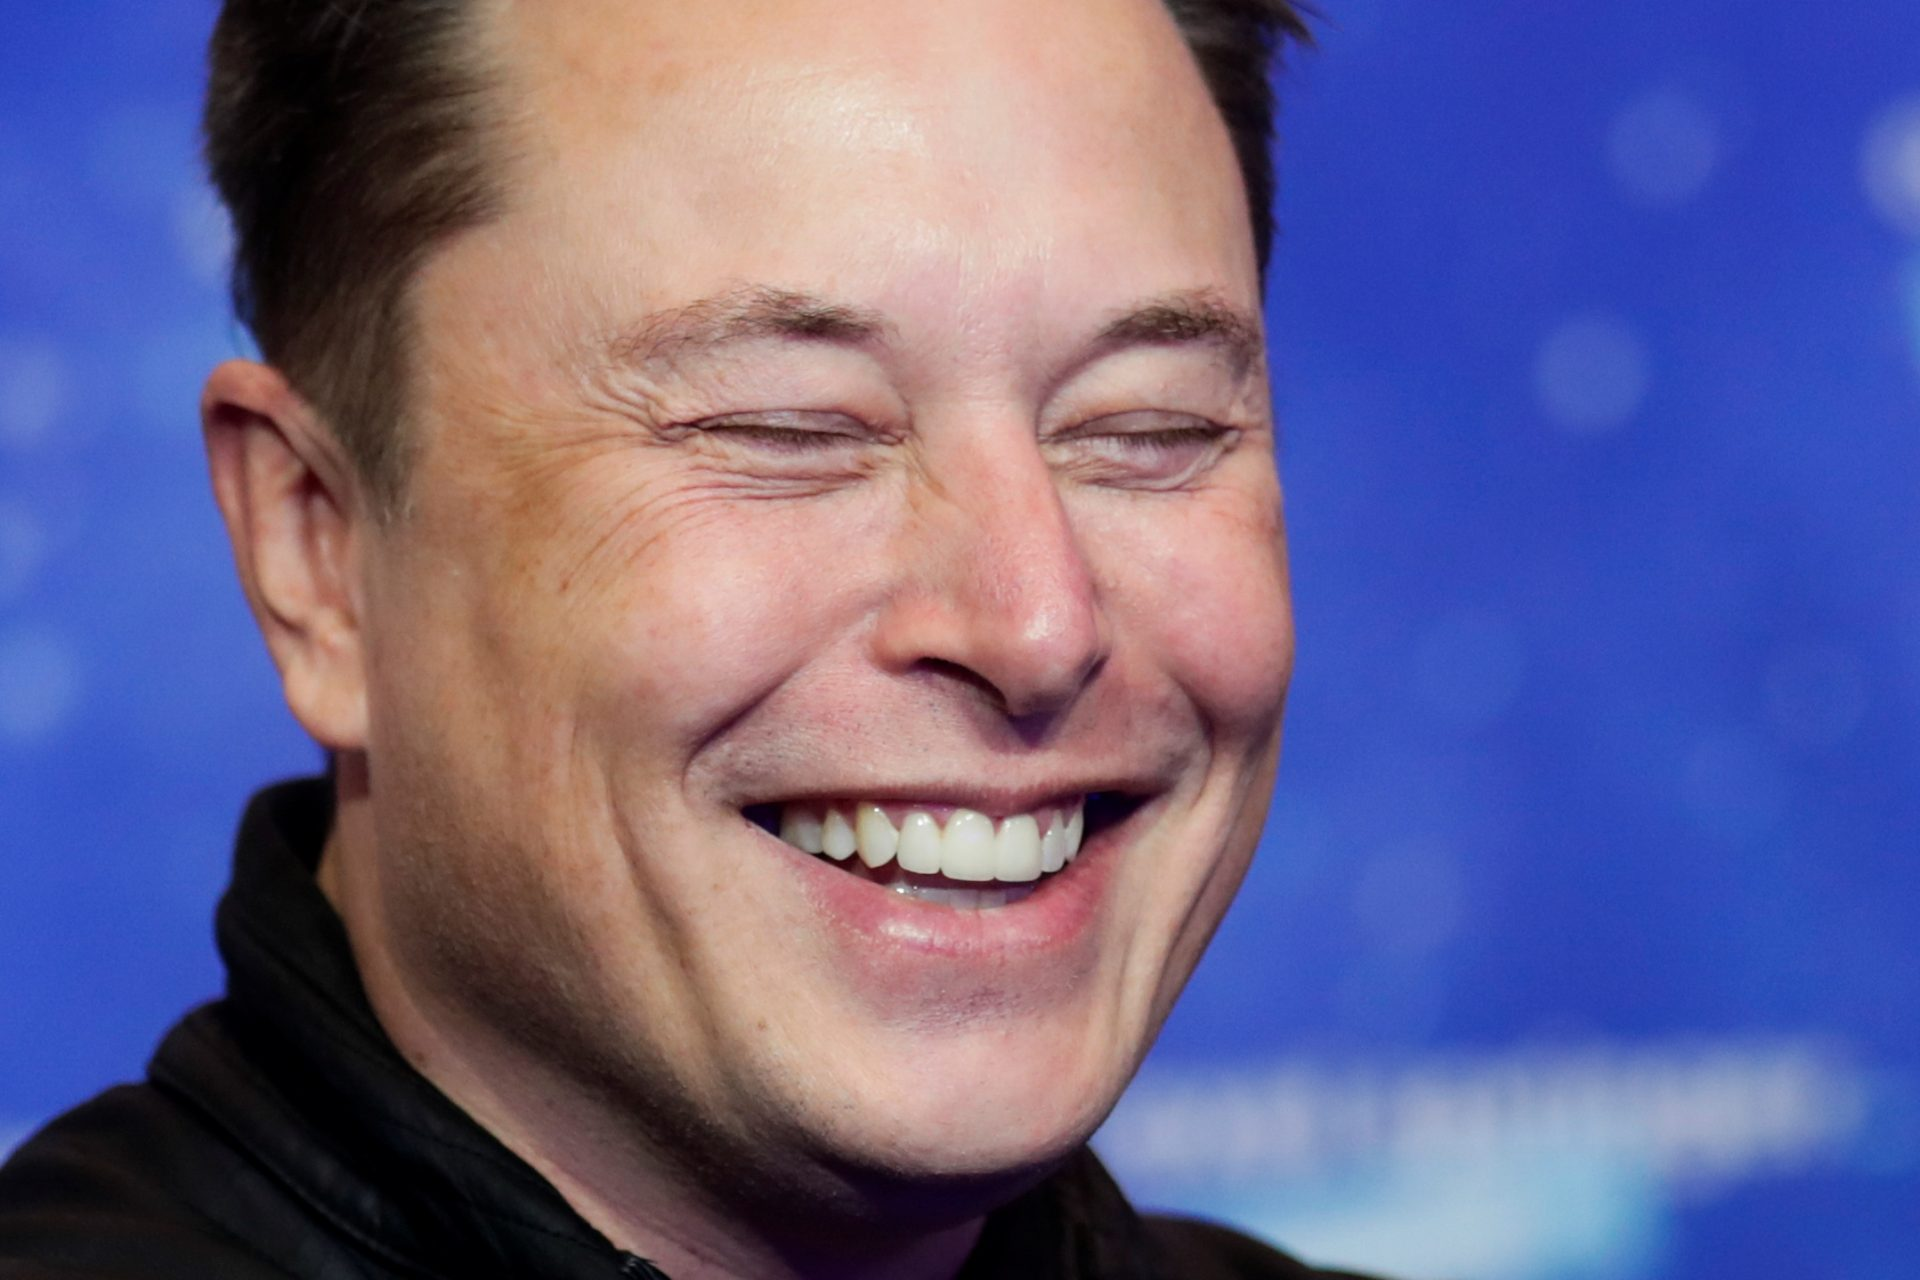 Mandatory Credit: Photo by HANNIBAL HANSCHKE/POOL/EPA-EFE/Shutterstock (11088622z)SpaceX owner and Tesla CEO Elon Musk laughs after arriving on the red carpet for the Axel Springer award, in Berlin, Germany, 01 December 2020.